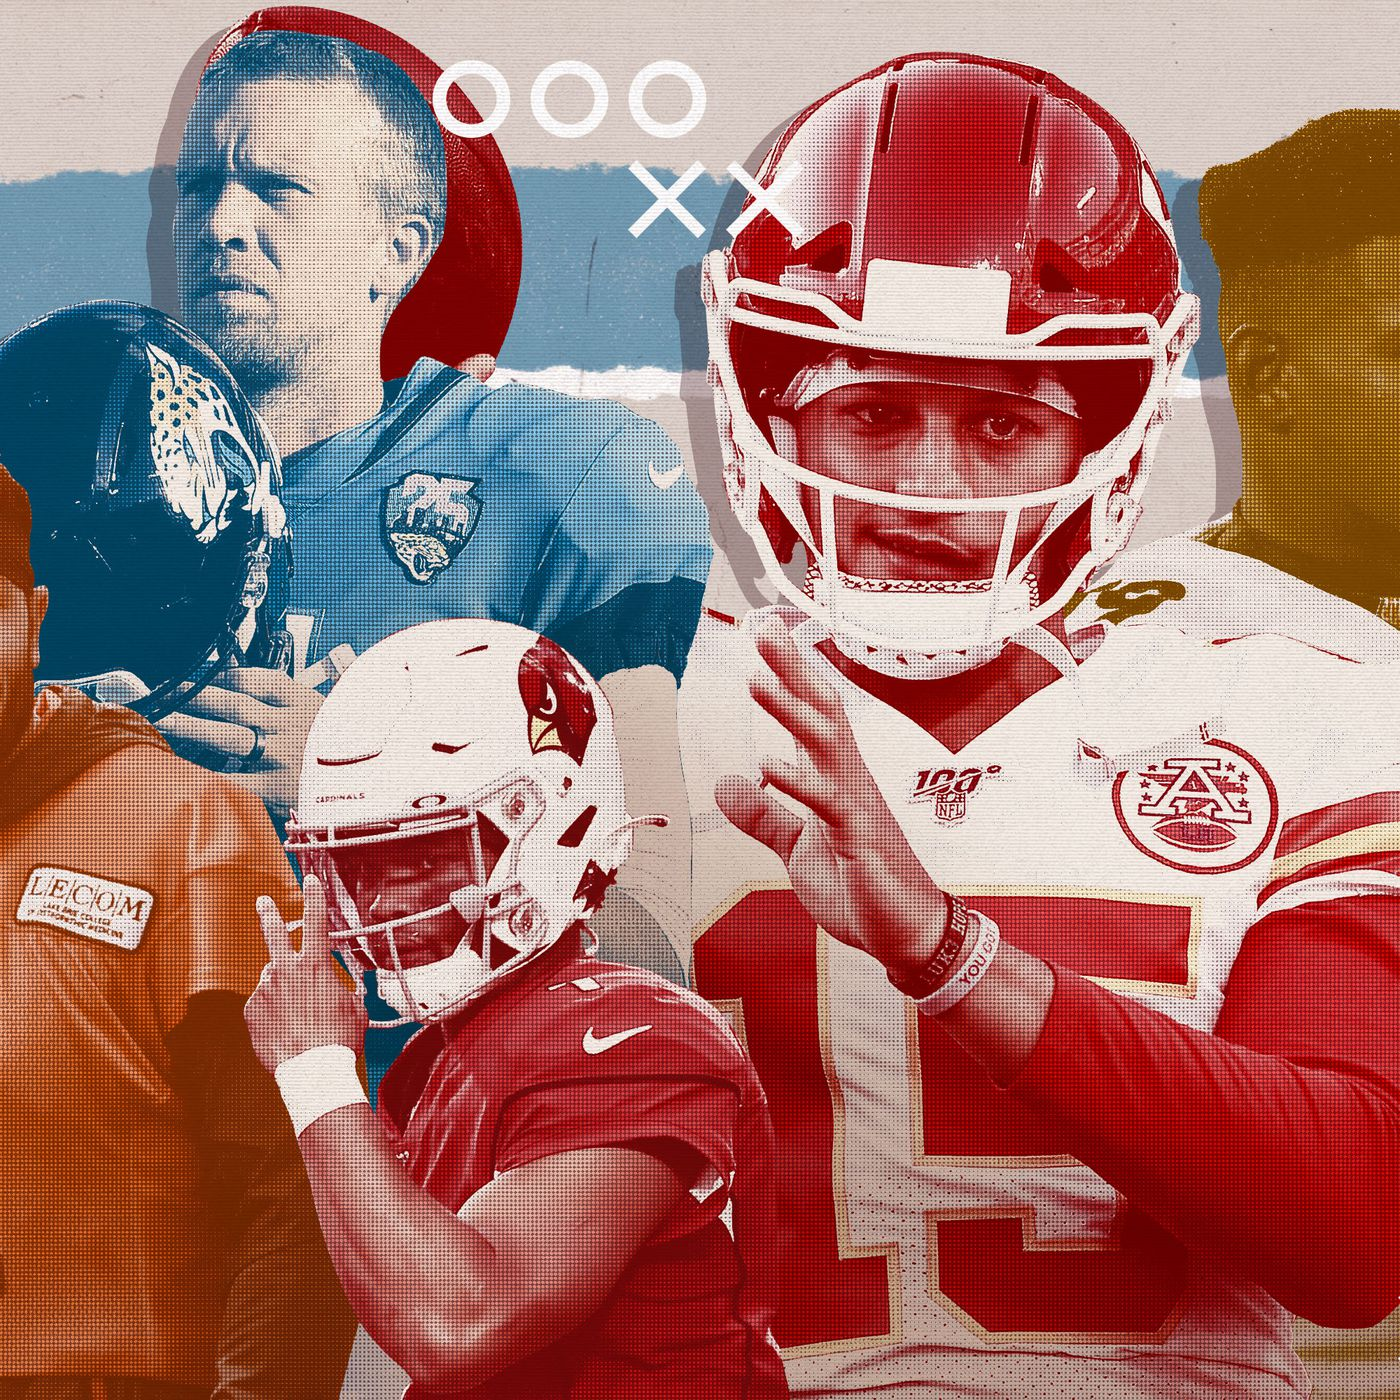 What We're Most Excited to Watch in the 2019 NFL Season